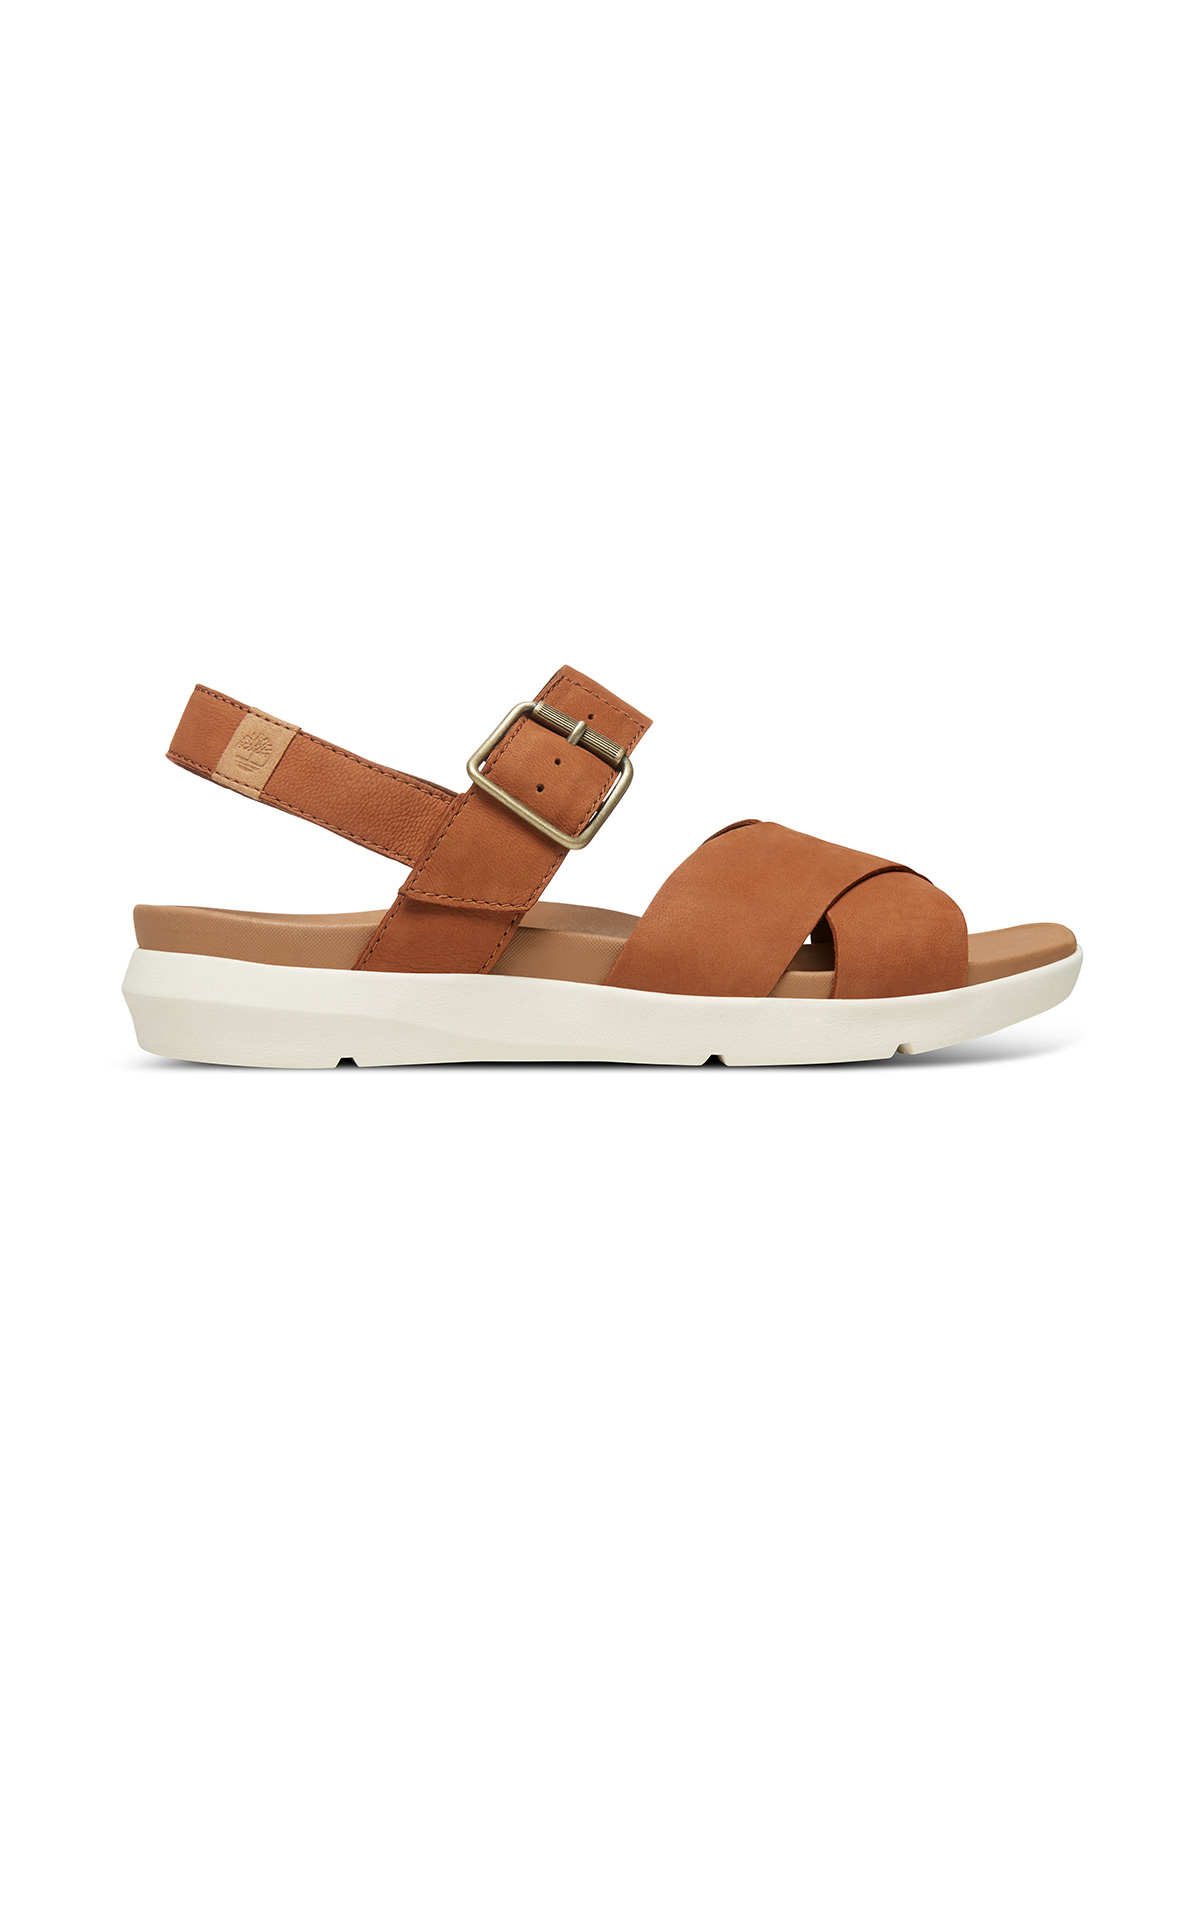 Timberland sandal at The Bicester Village Shopping Collection